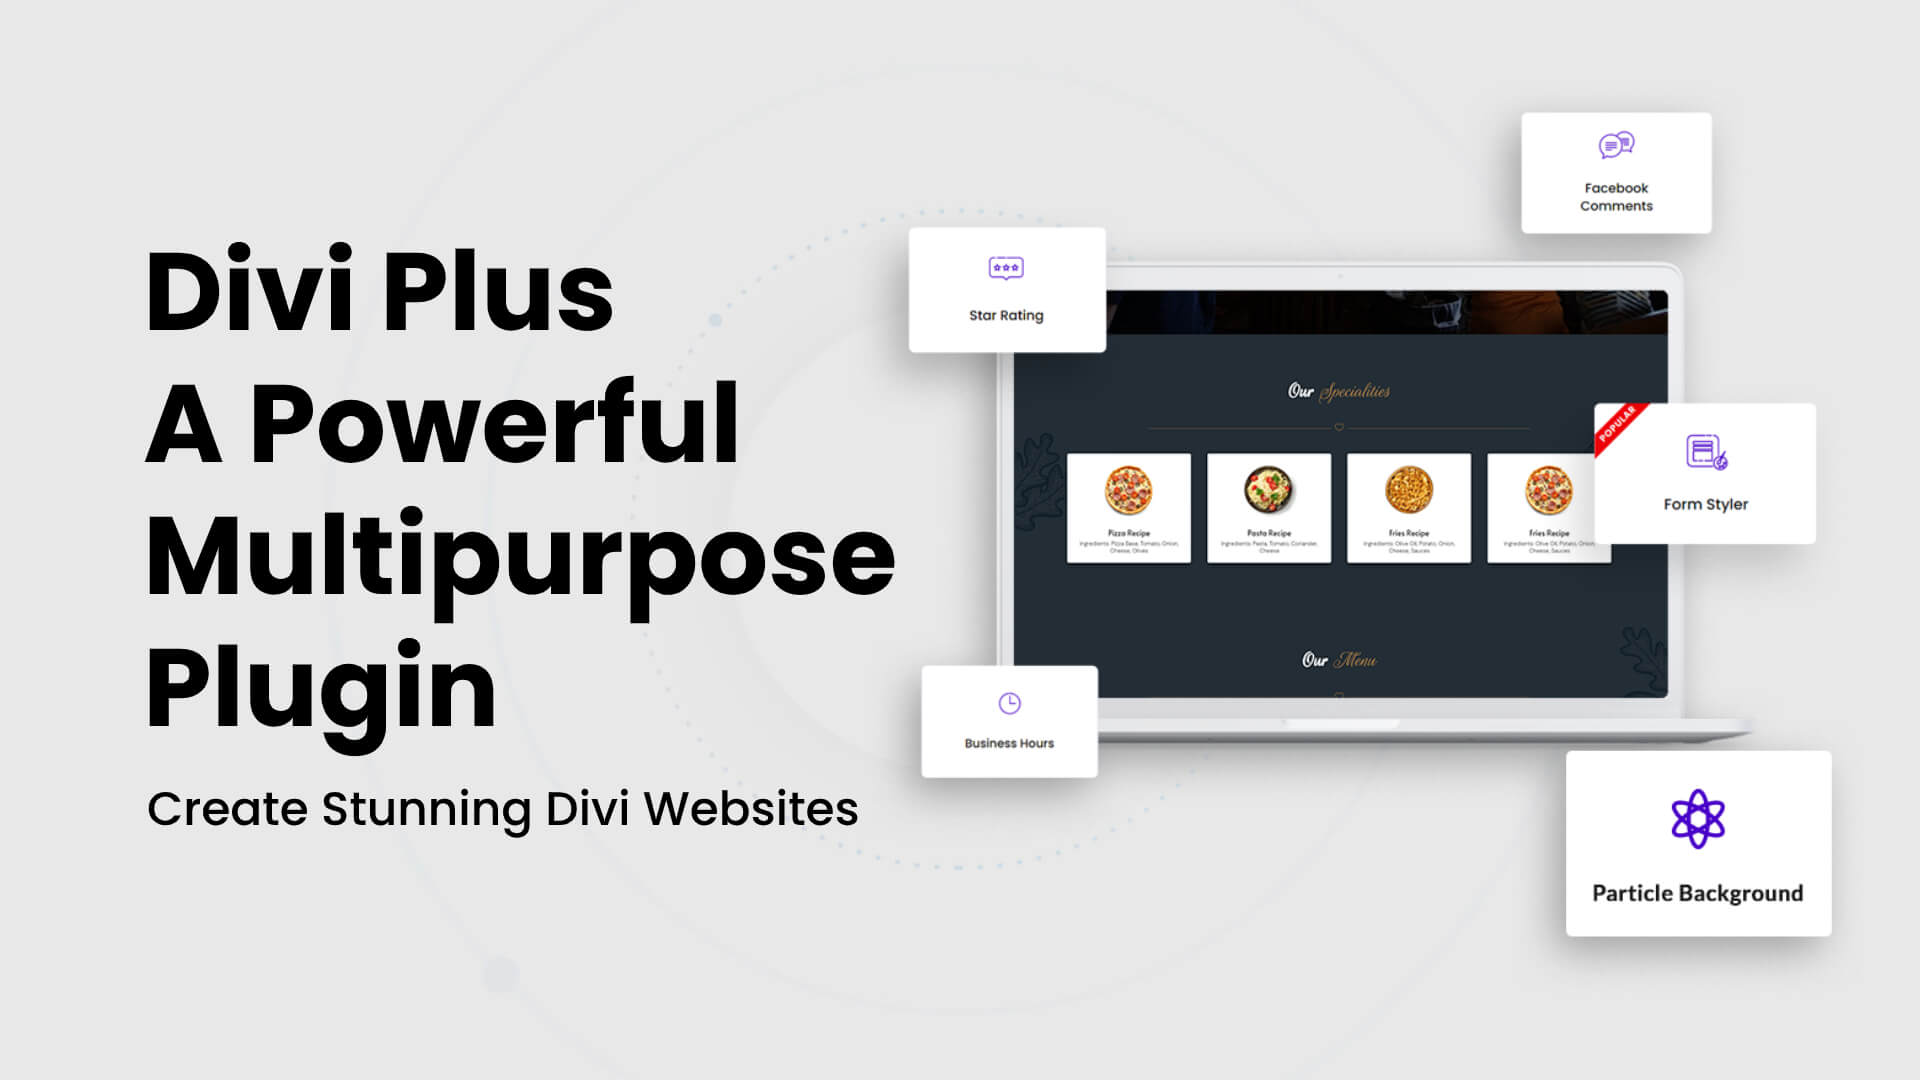 Divi Plus overview blog post image